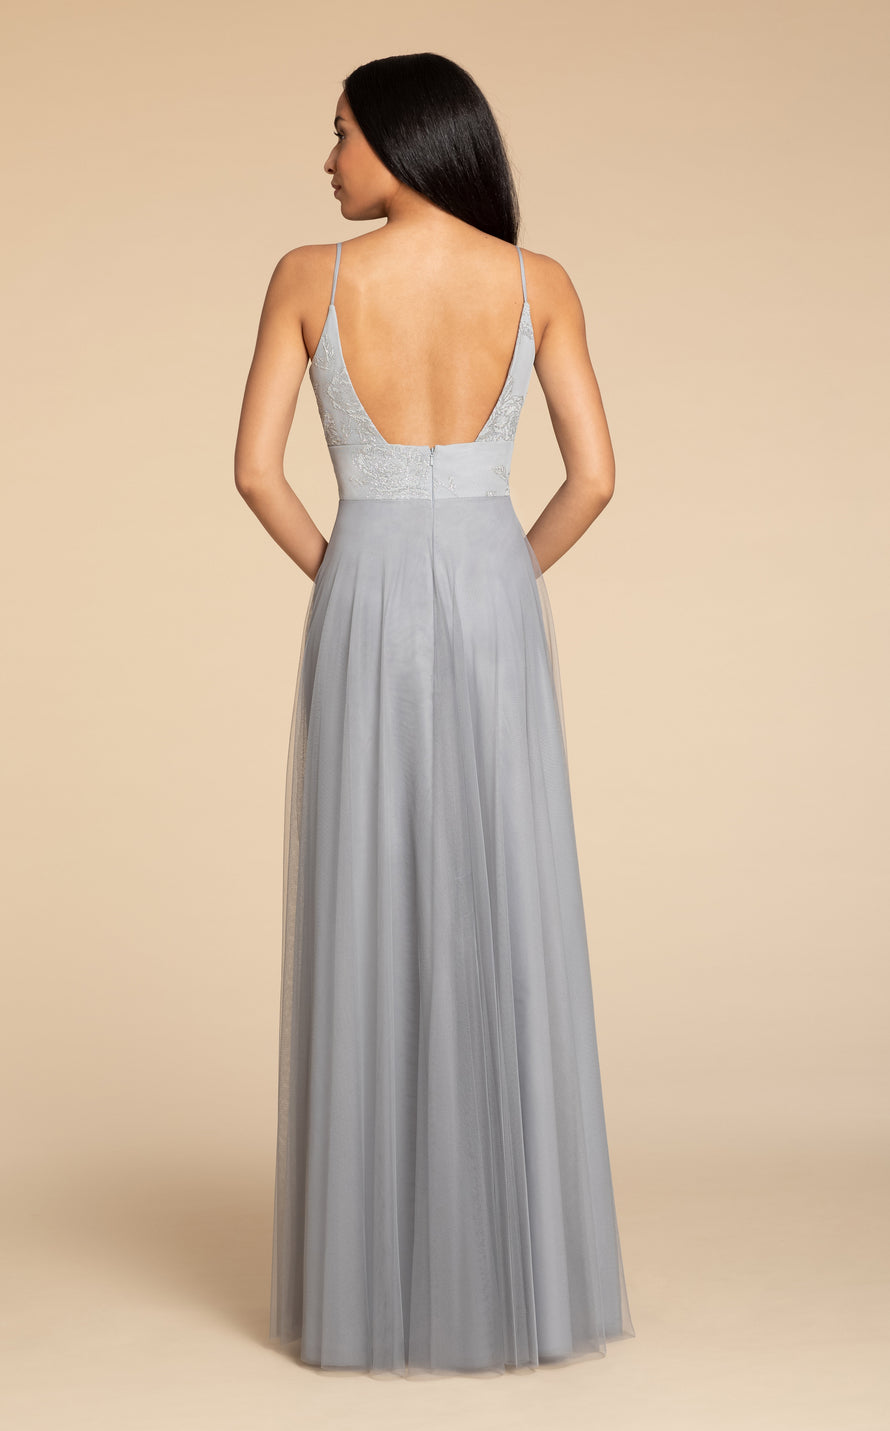 Hayley Paige Occasions Long Bridesmaid Dress - 5908 back